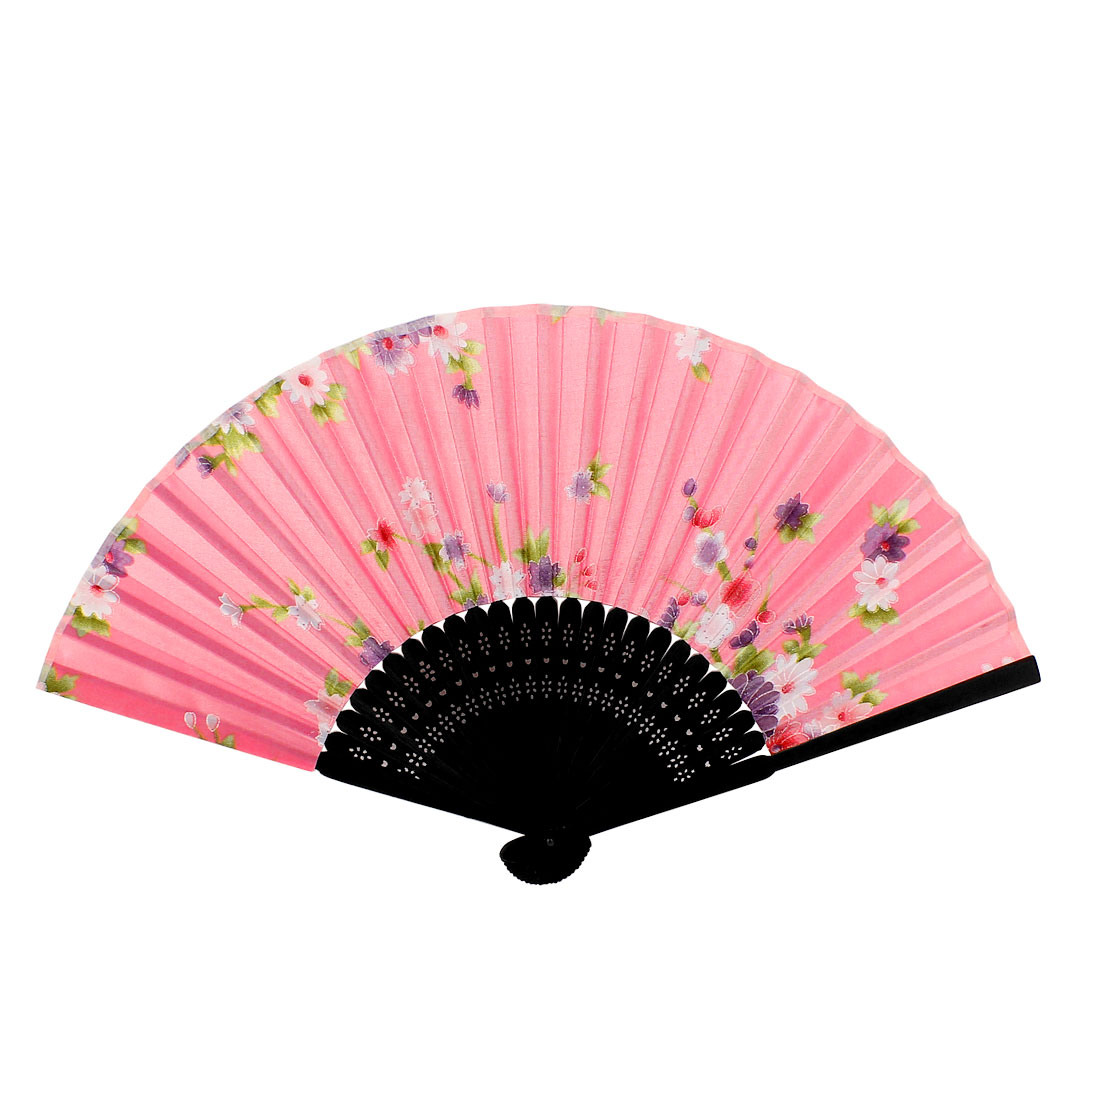 Summer Japanese Style Black Bamboo Ribs Purple Flower Pattern Folding Hand Fan Pink 37cm for Lady